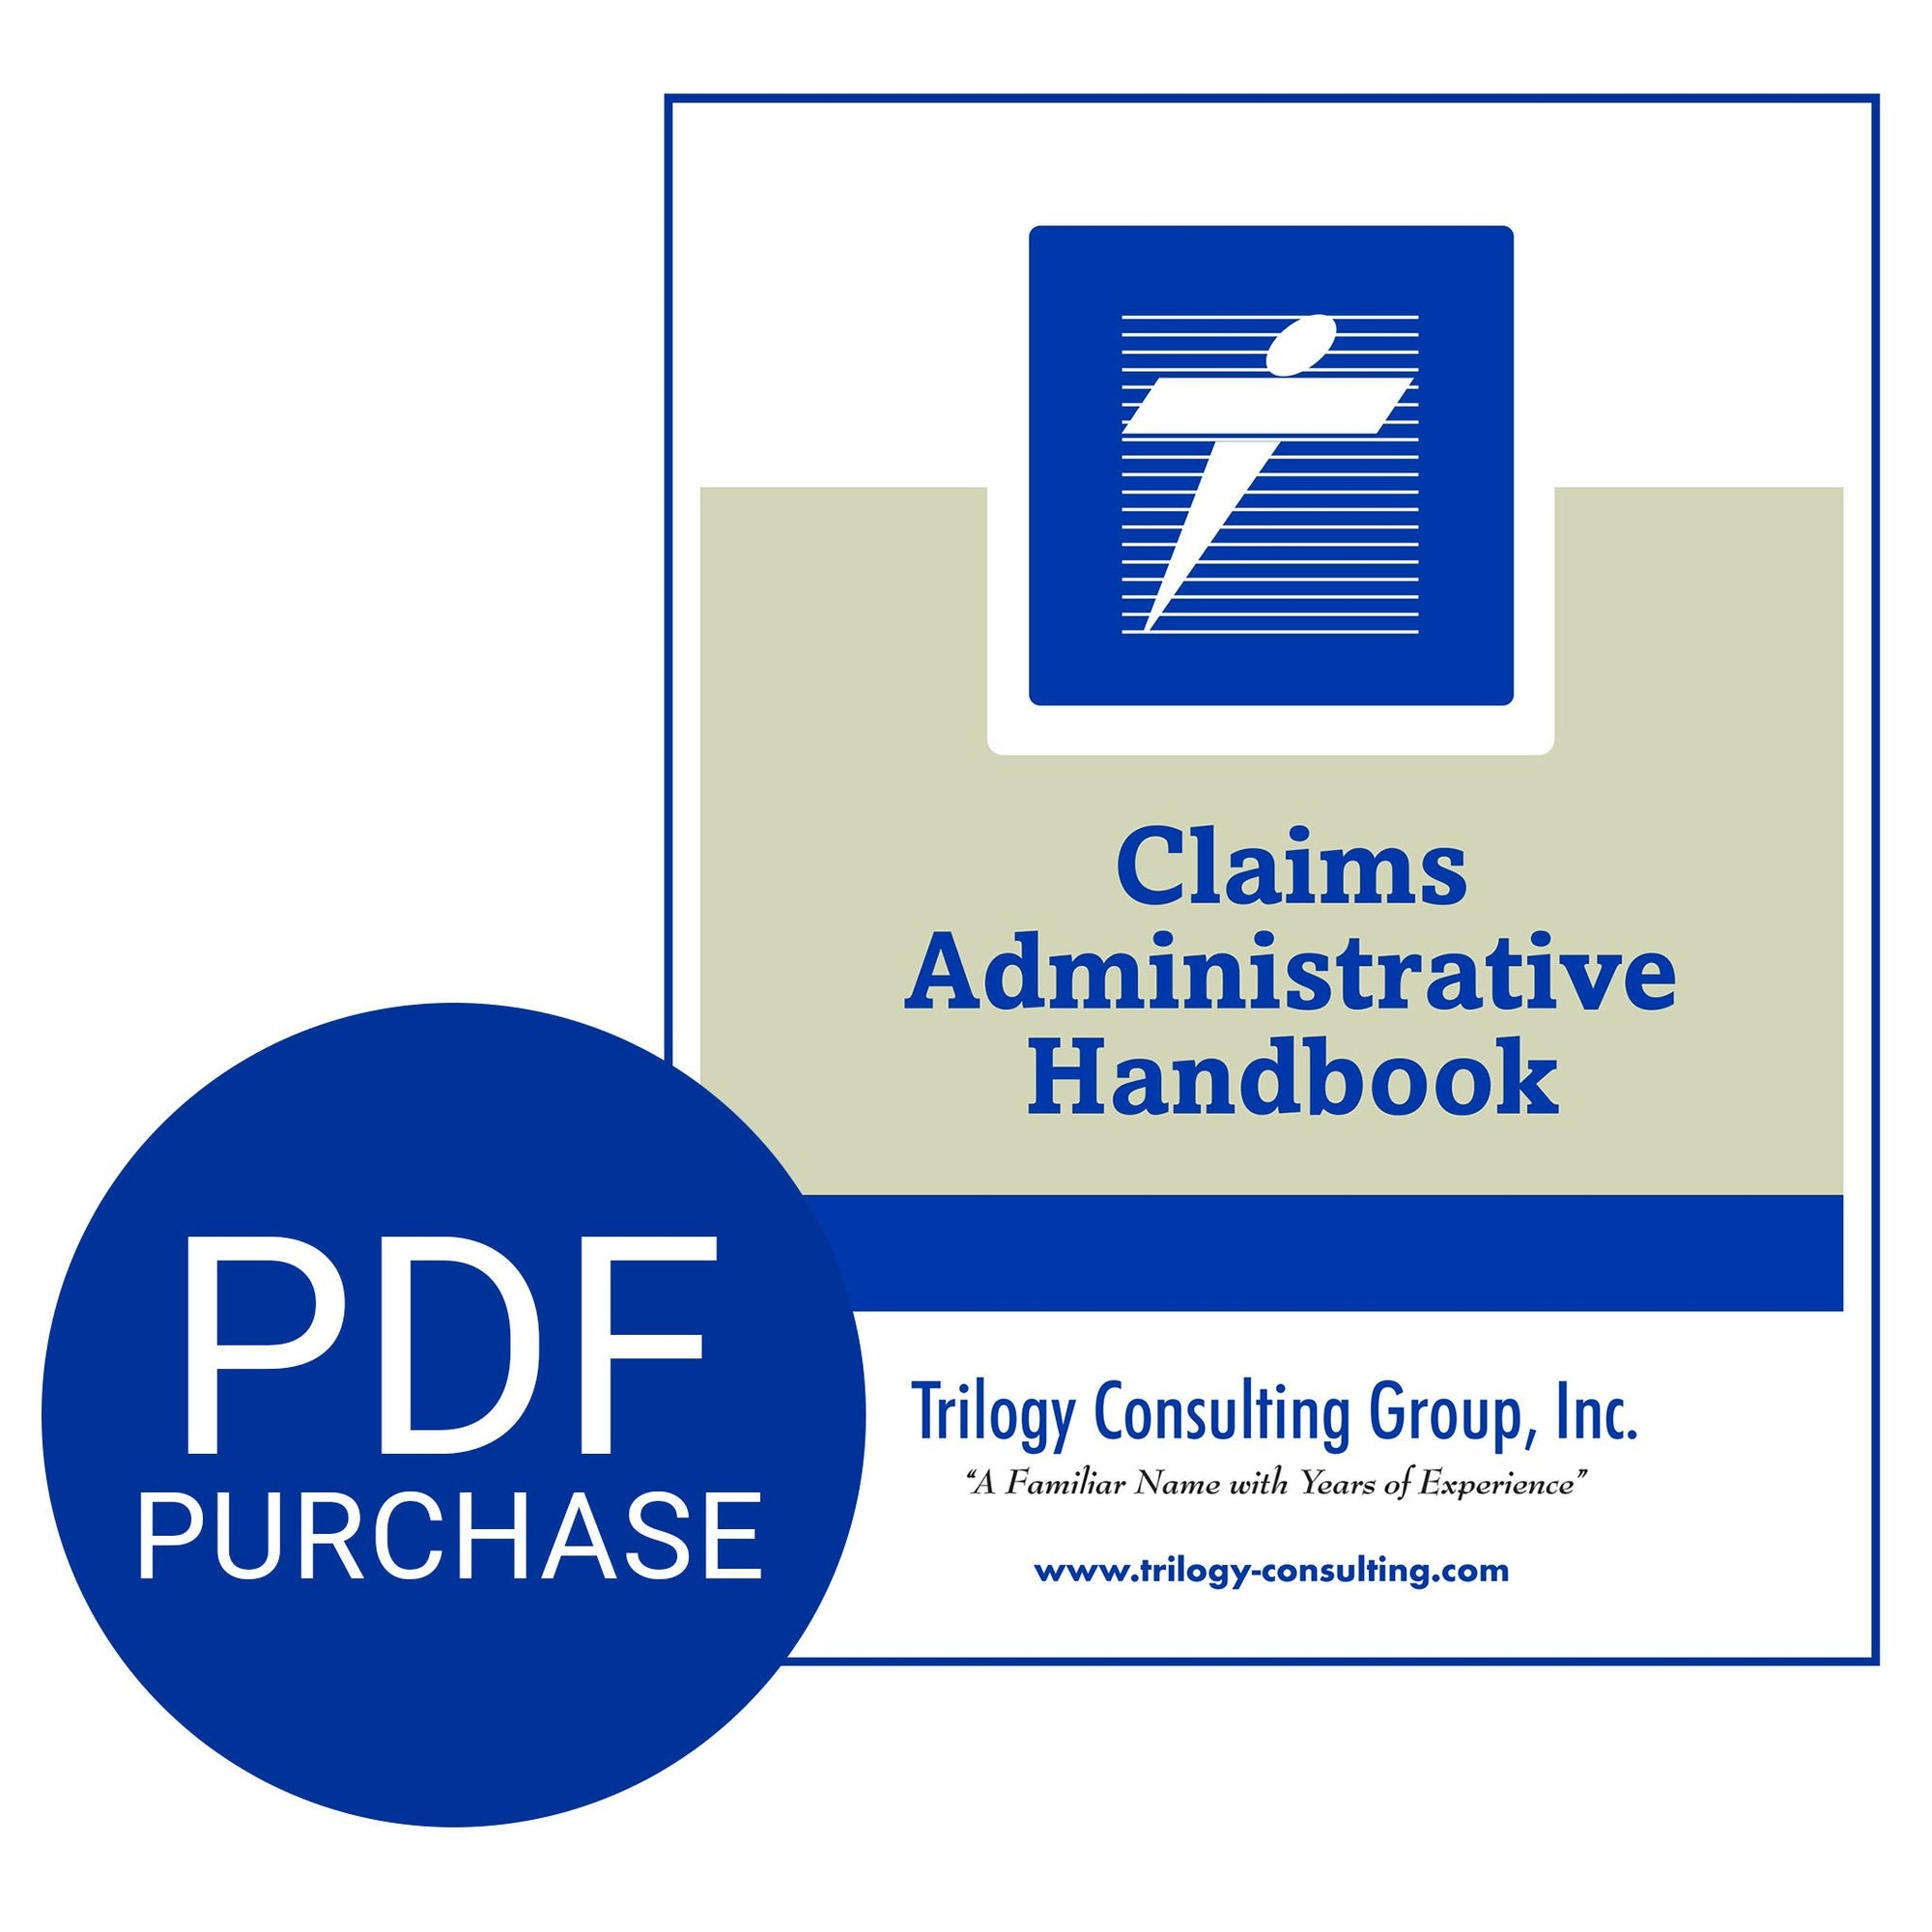 Trilogy Claims Administrative Handbook - Downloadable PDF